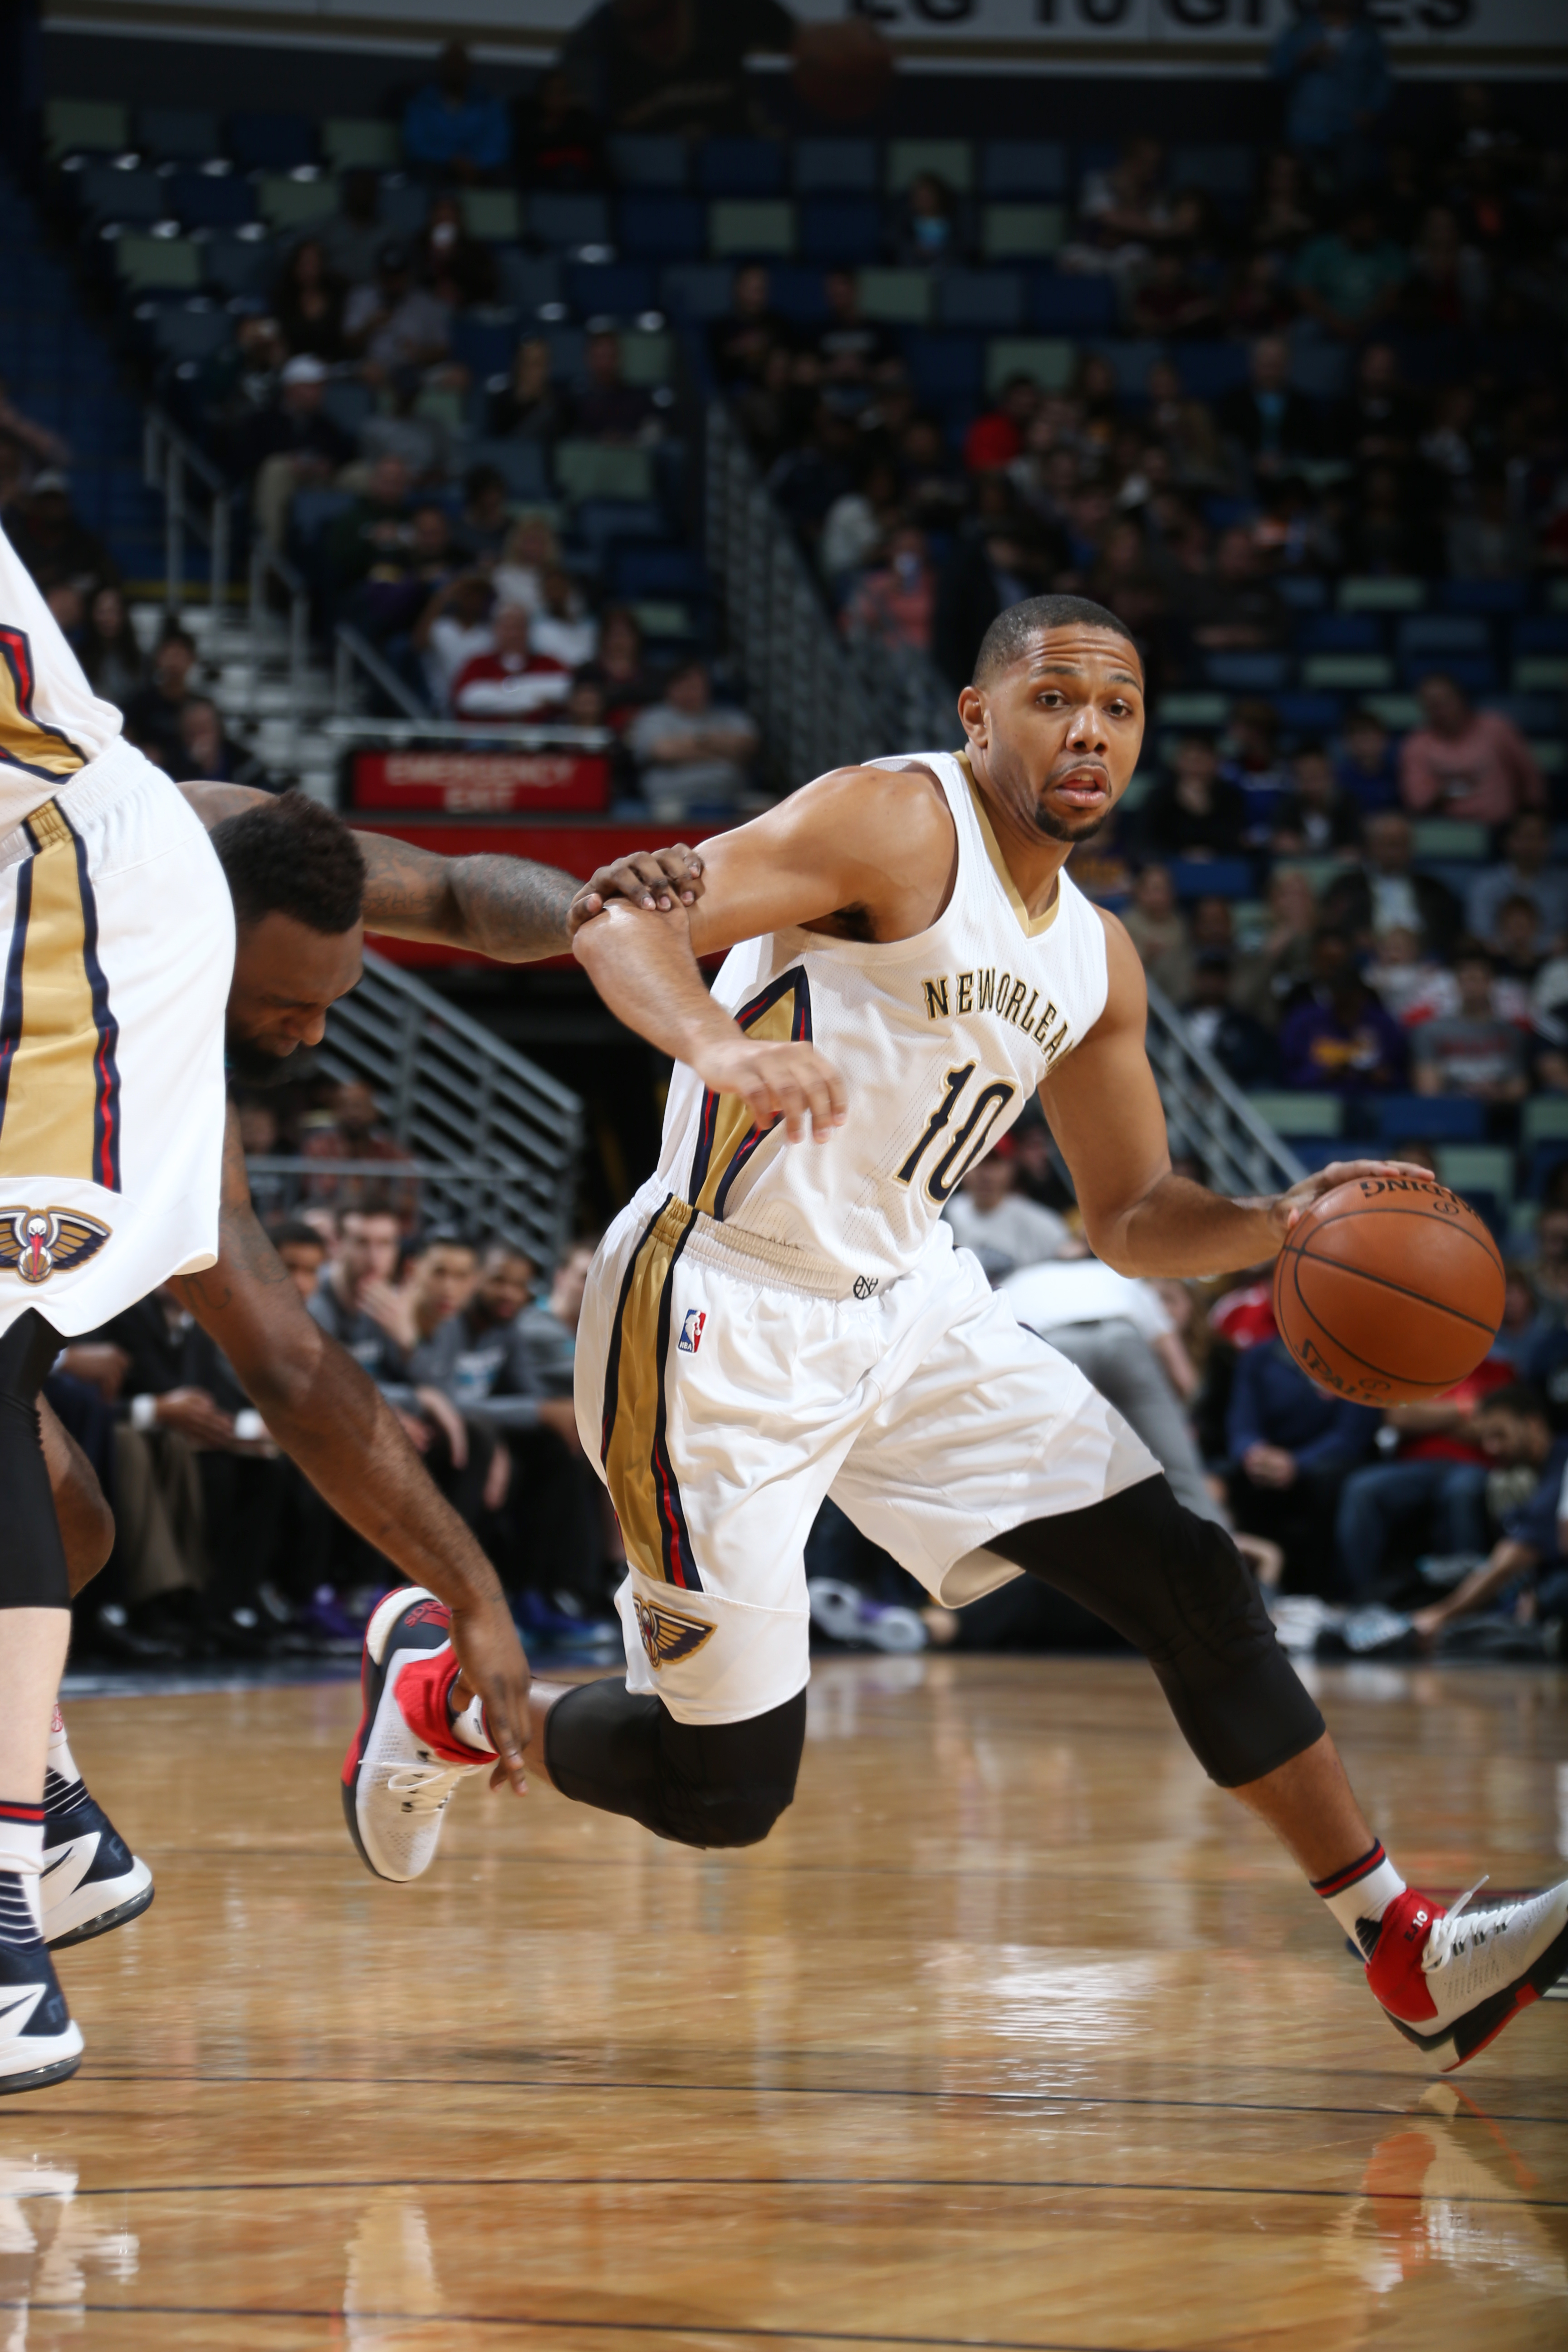 NEW ORLEANS, LA - JANUARY 15: Eric Gordon #10 of the New Orleans Pelicans drives to the basket against the Charlotte Hornets during the game on January 15, 2016 at Smoothie King Center in New Orleans, Louisiana. (Photo by Layne Murdoch Jr./NBAE via Getty